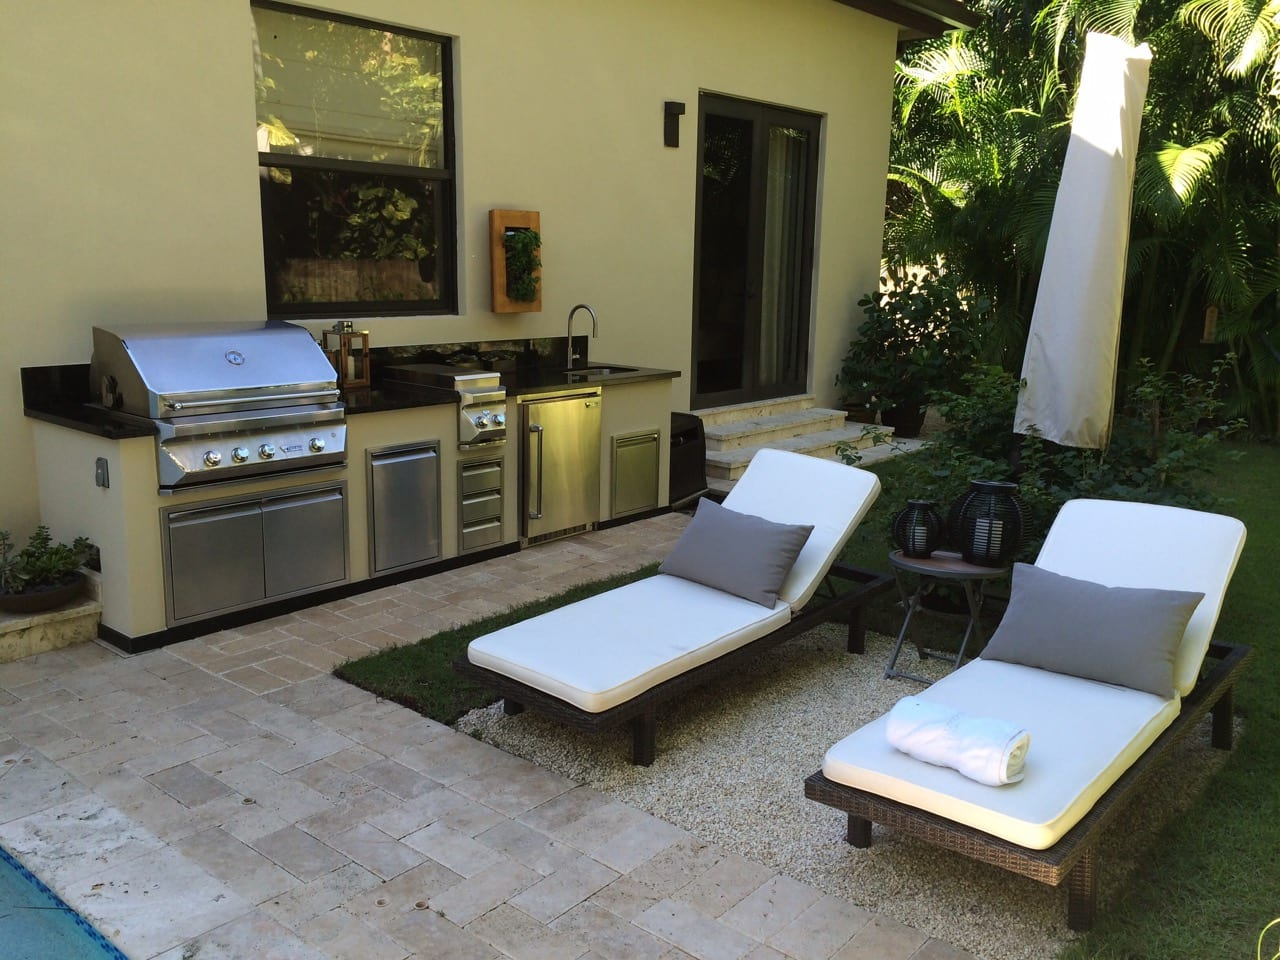 Outdoor kitchen appliances home design ideas - Outdoor kitchen appliances ...